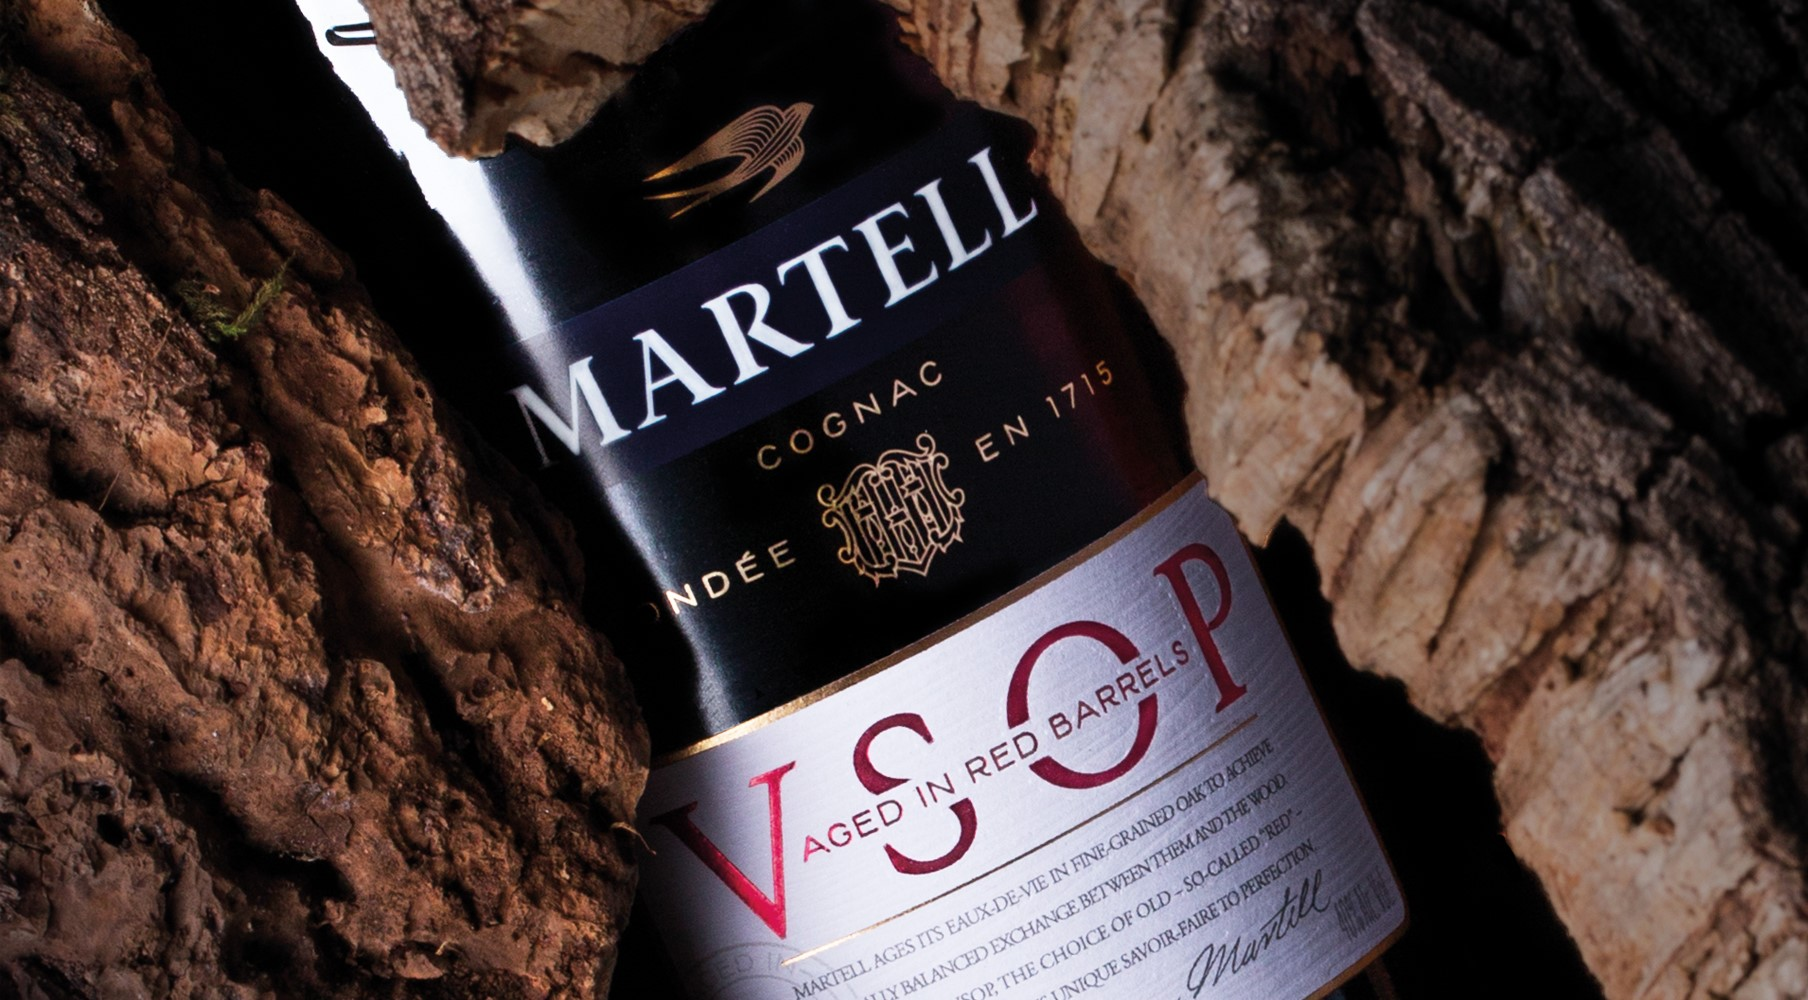 VSOP Aged In red barrels